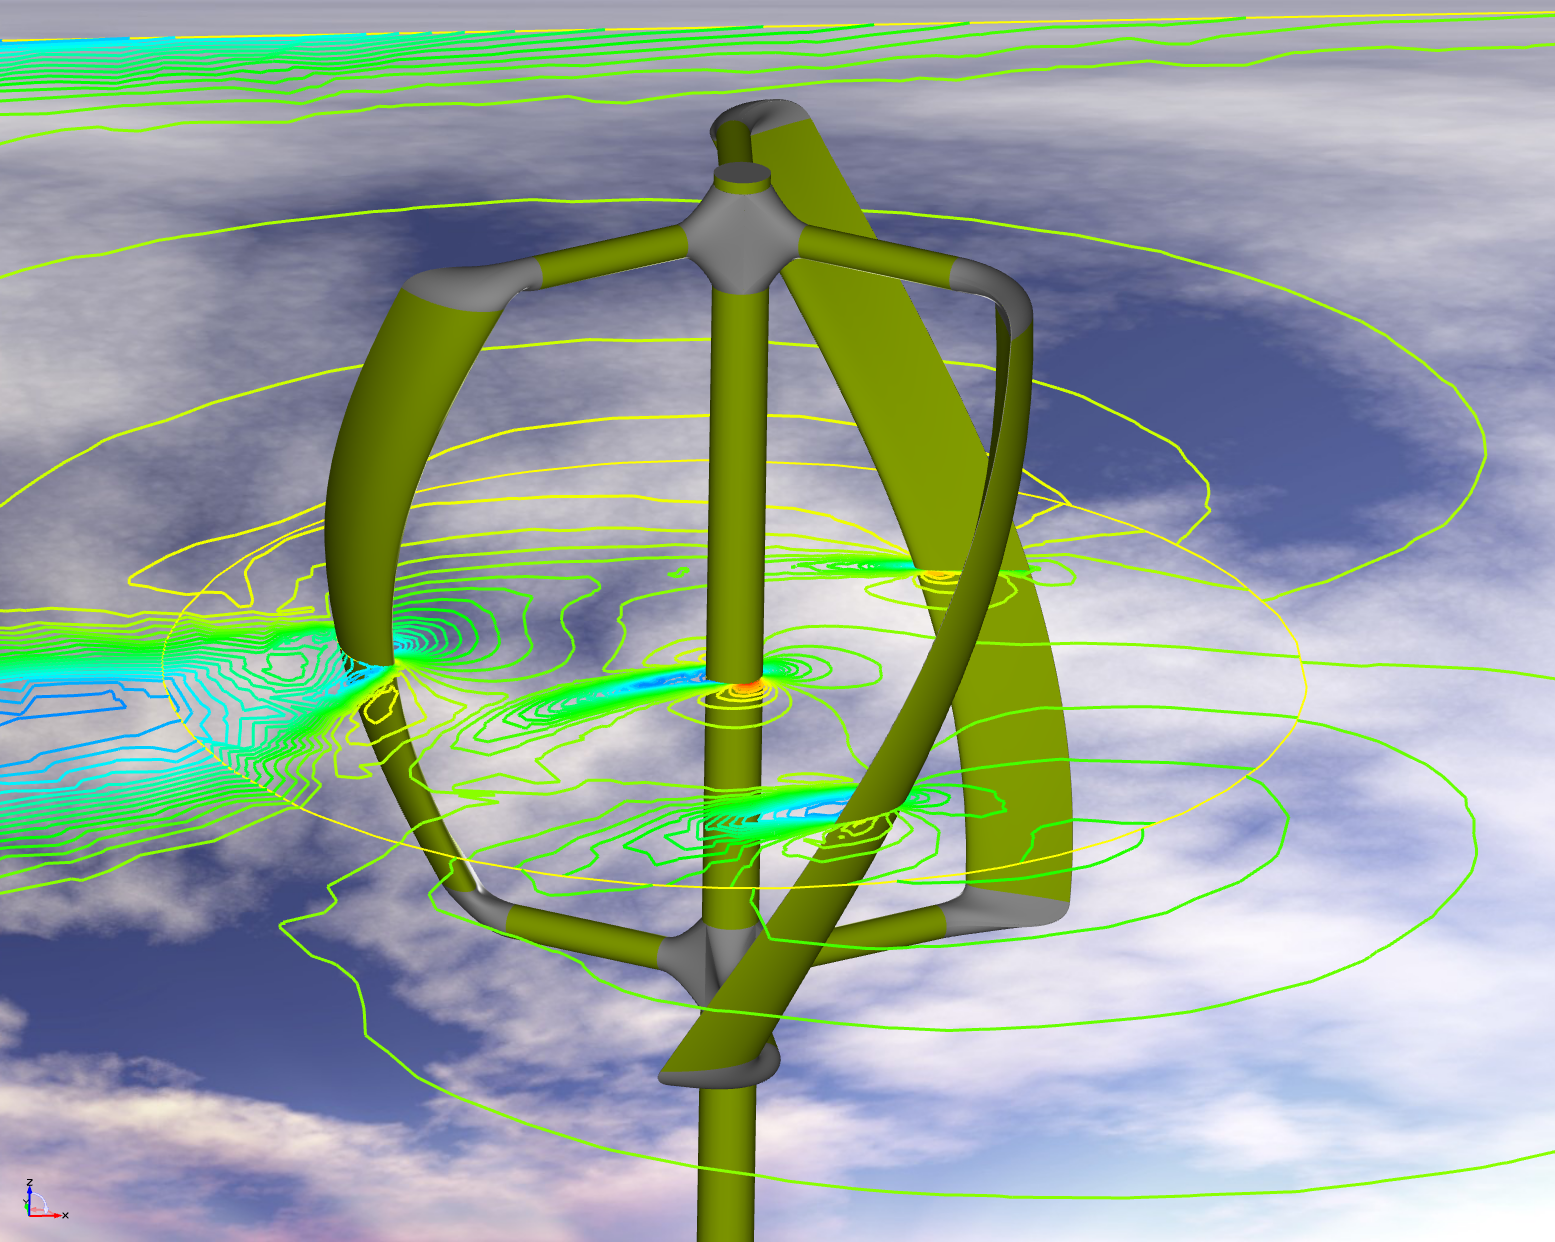 Design Of A Vawt Vertical Axis Wind Turbine Darrieus